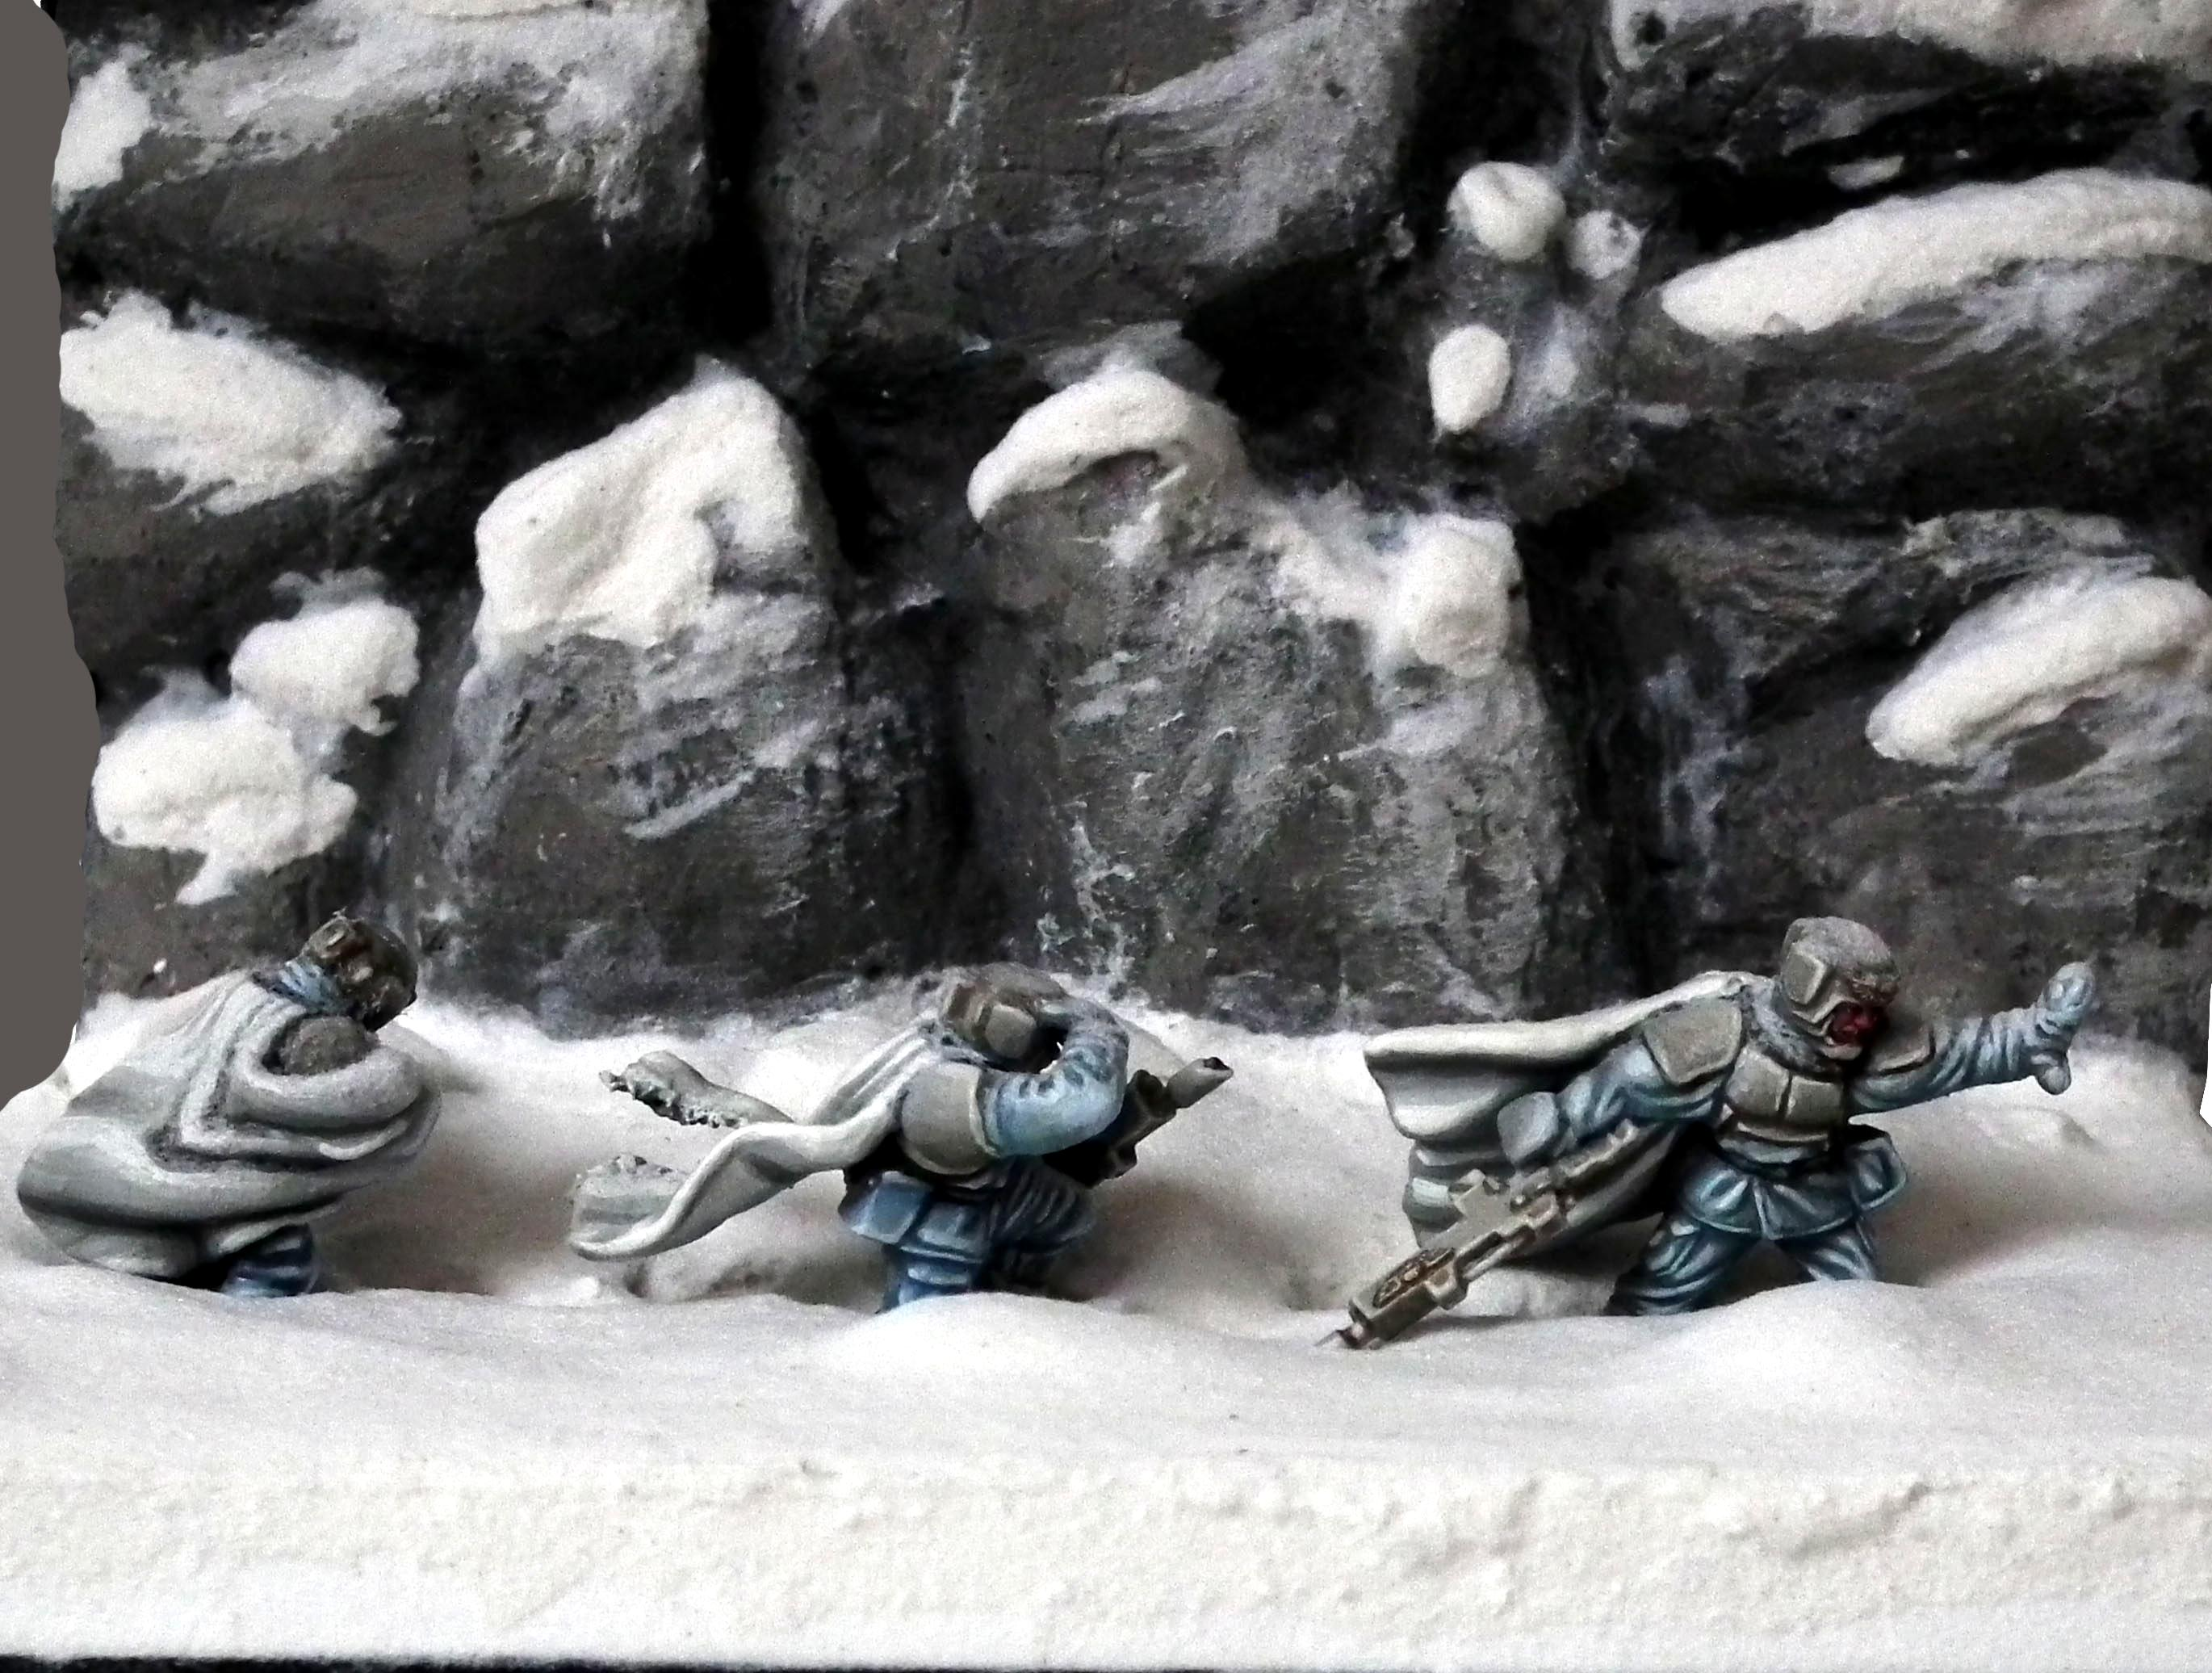 Ambush, Ameazing, Camouflage, Diorama, Duel, Duell, Hills, Imperial Guard, Nice, Pathfinders, Perfect, Pva, Snow, Warhammer 40'000, Warhammer 40,000, White, Wind, Winter